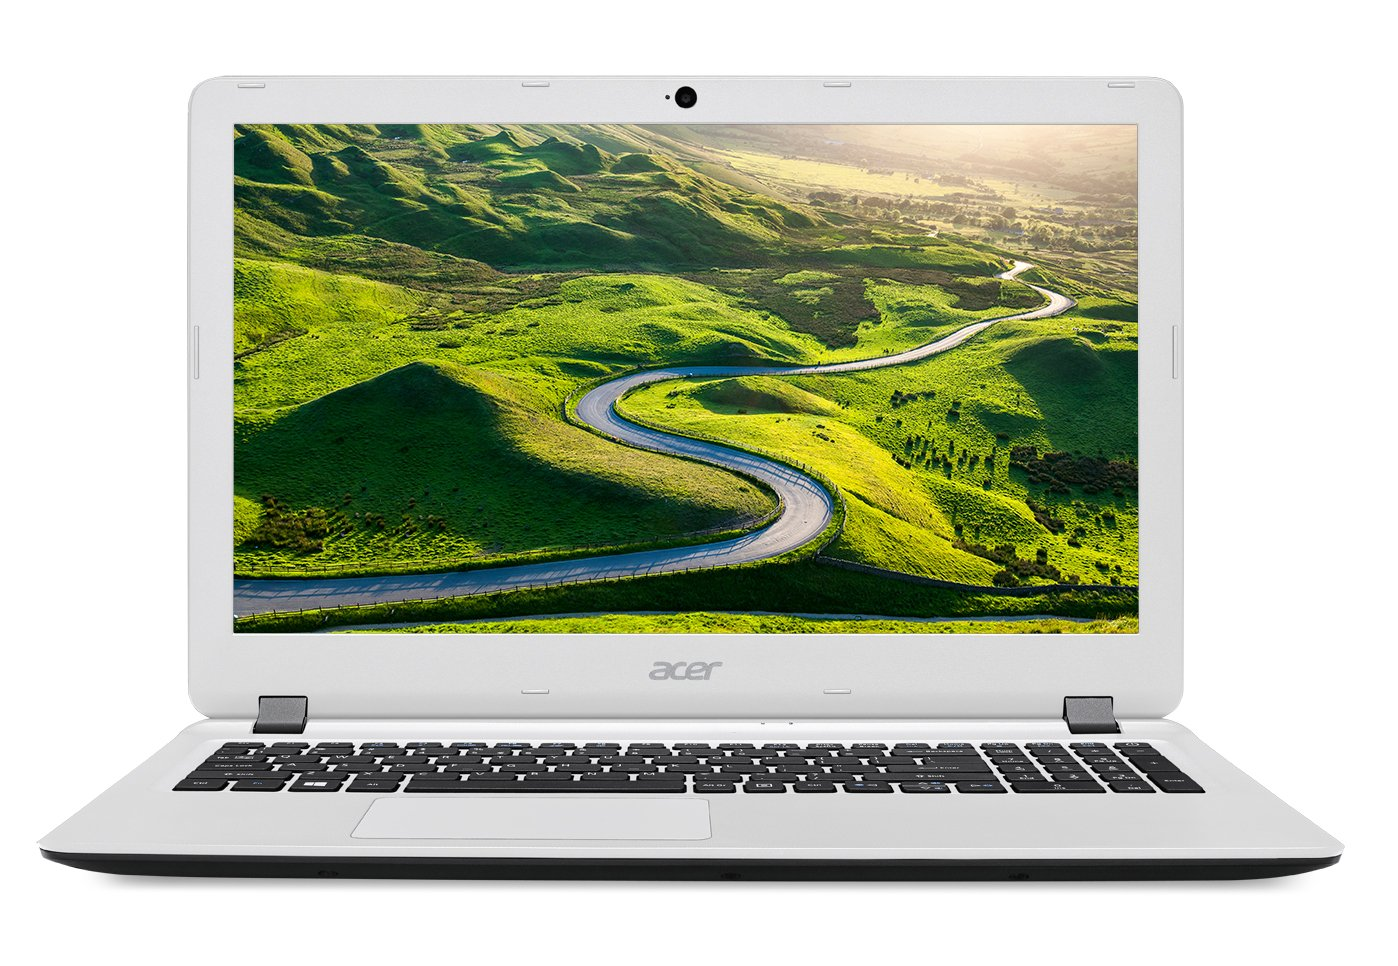 "Acer Aspire ES 15 (ES1-572-P9JU) Pentium 4405U/4GB+N/128GB SSD+N/A/DVDRW/HD Graphics/15.6"" FHD LED mat/Boo-up Linux/B-W"